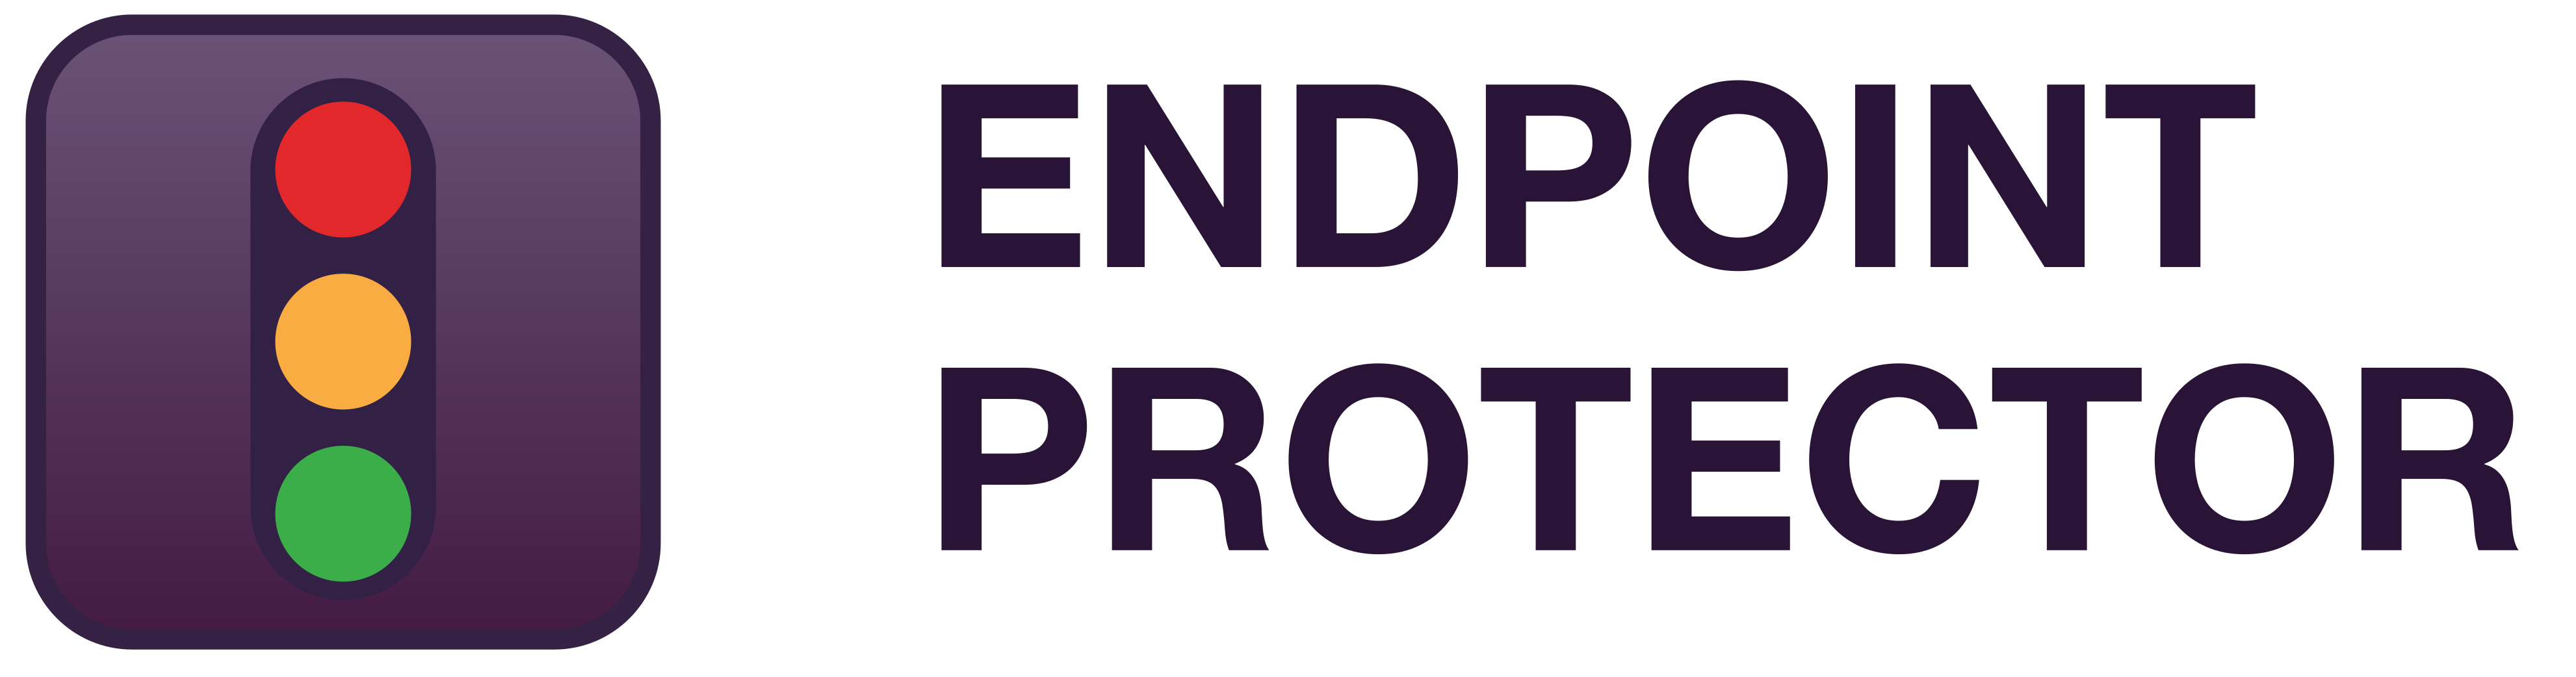 endpoint protector site logo